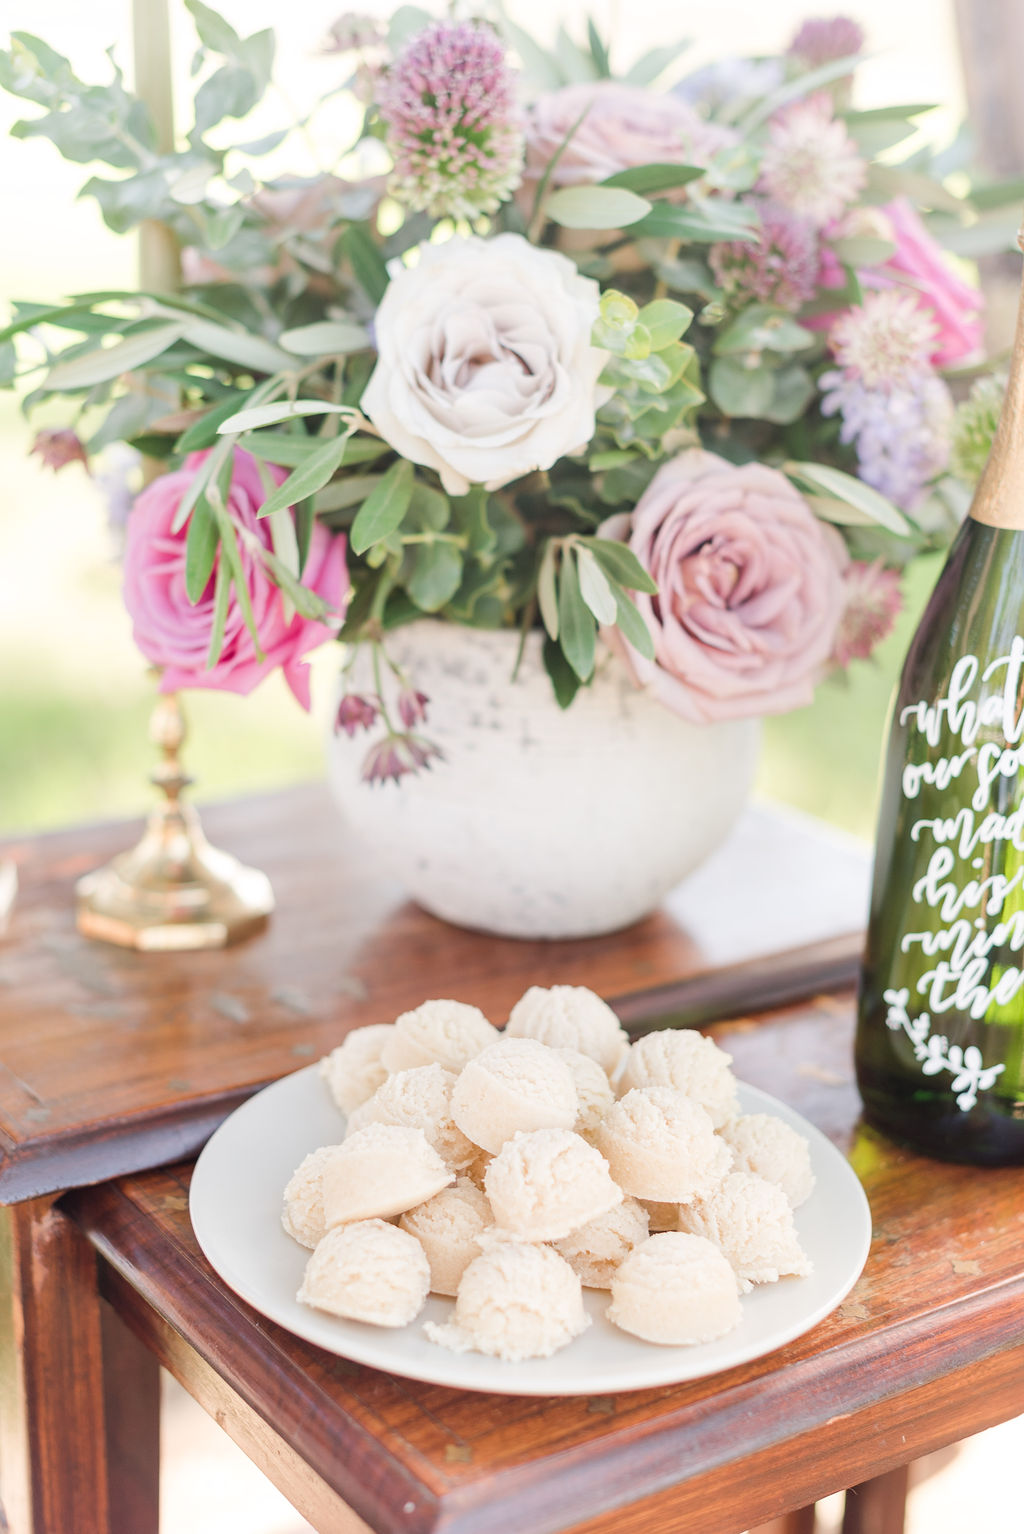 Tulsa Vow Renewal - Cookies and Flowers